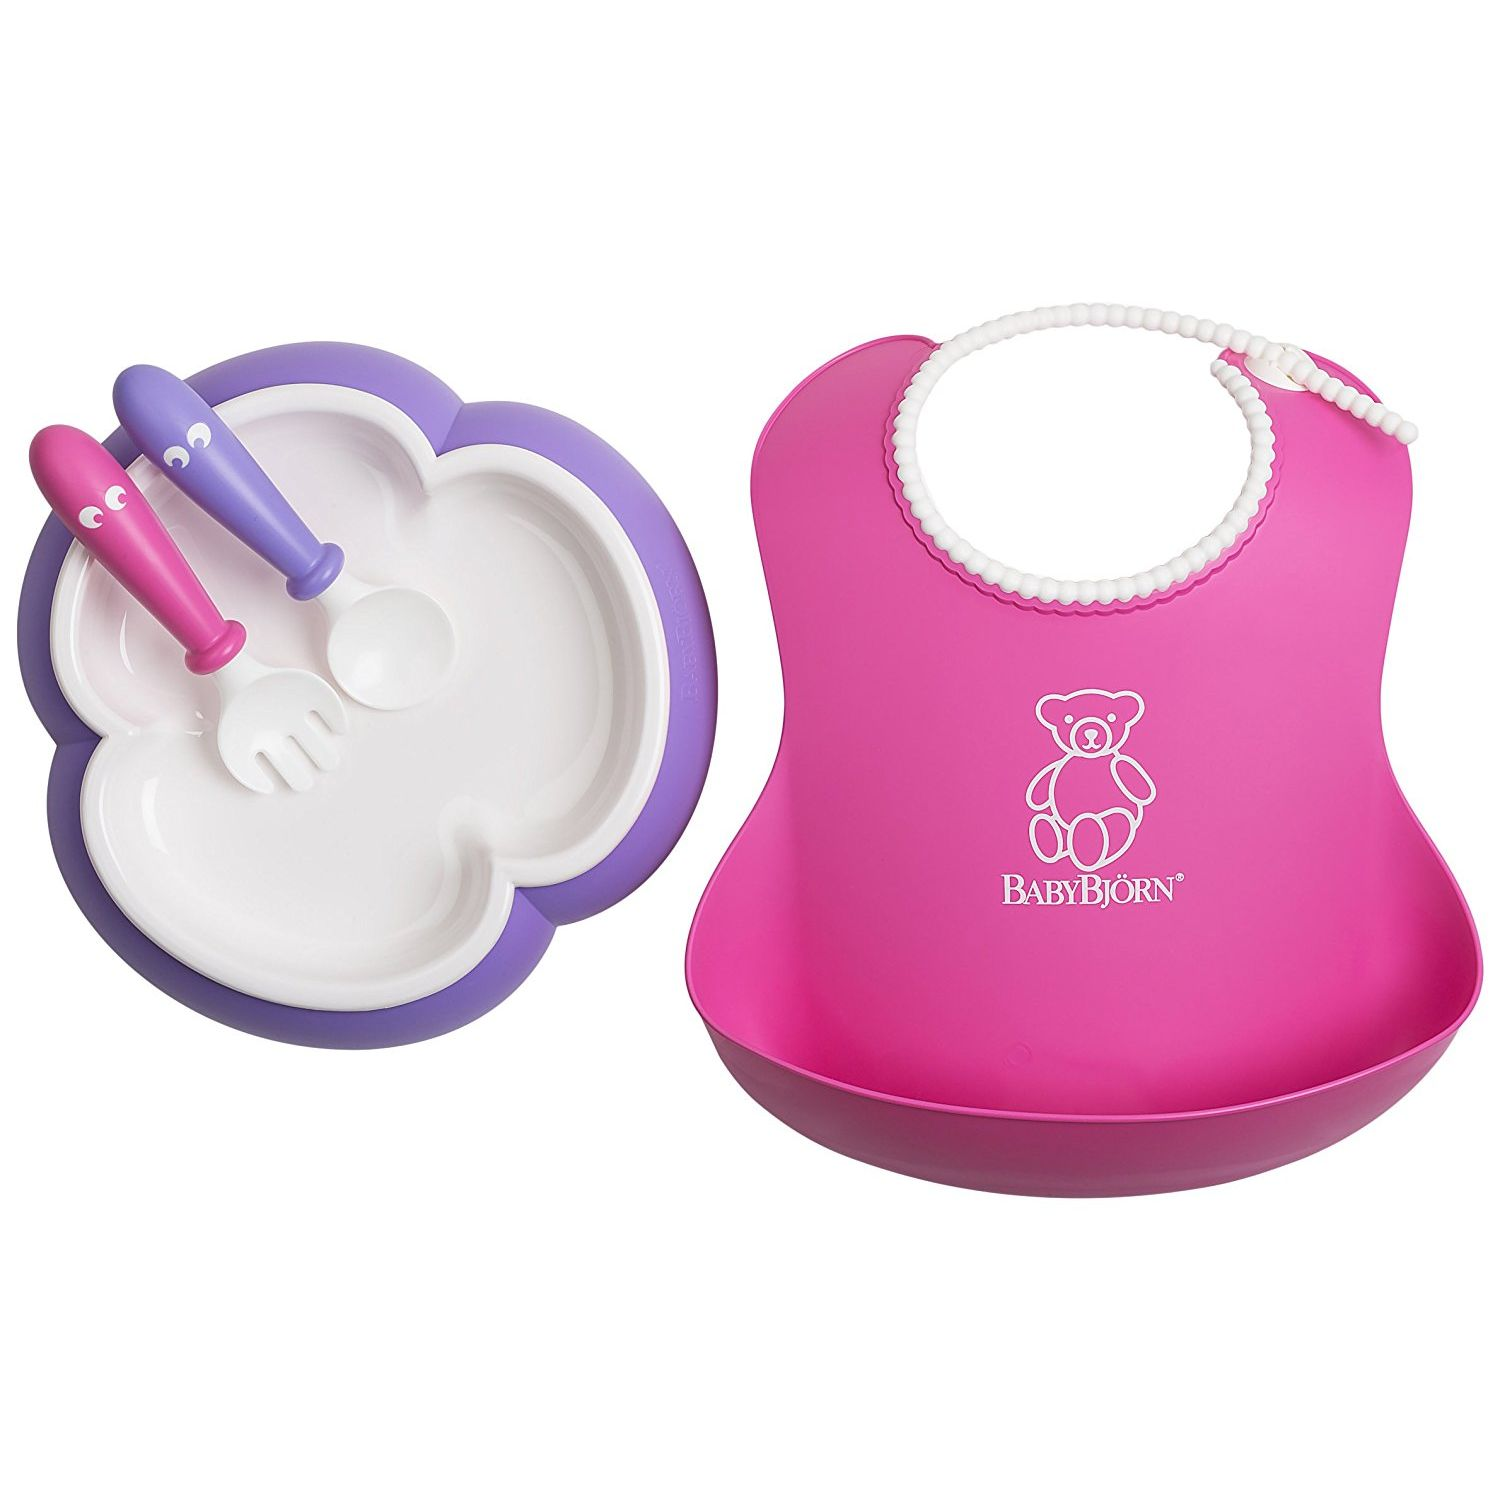 BabyBjorn Baby Feeding Set - Pink Soft Bib, Purple Plate, Purple Spoon and Pink Fork